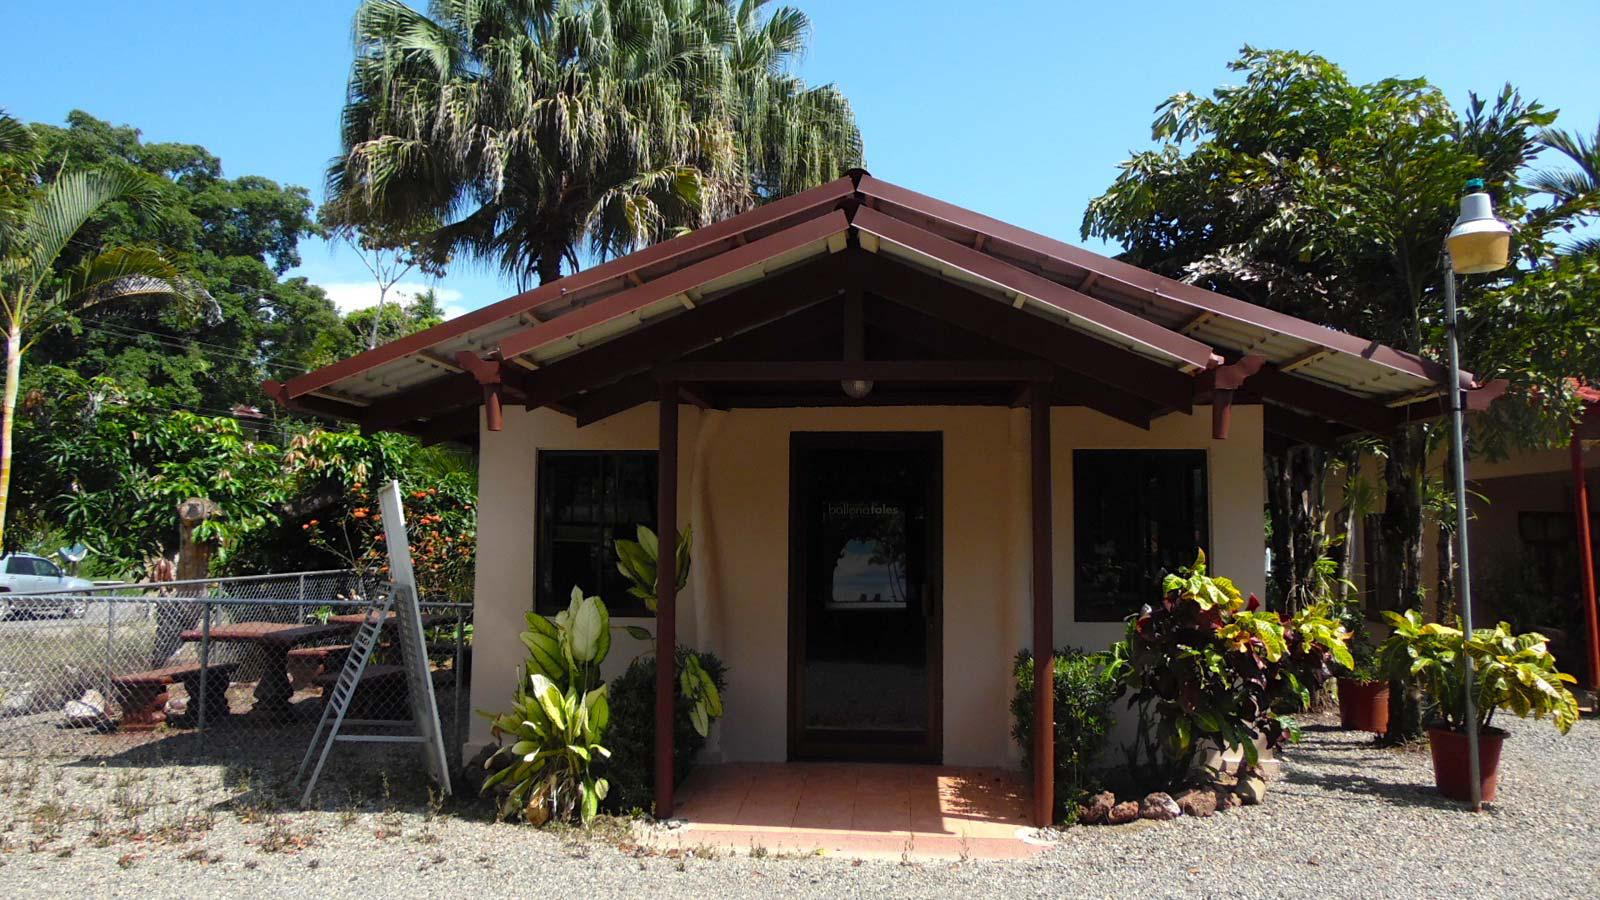 invest, commercial, cabias, south pacific real estate, turn-key, rental business, uvita real estate, extra espace